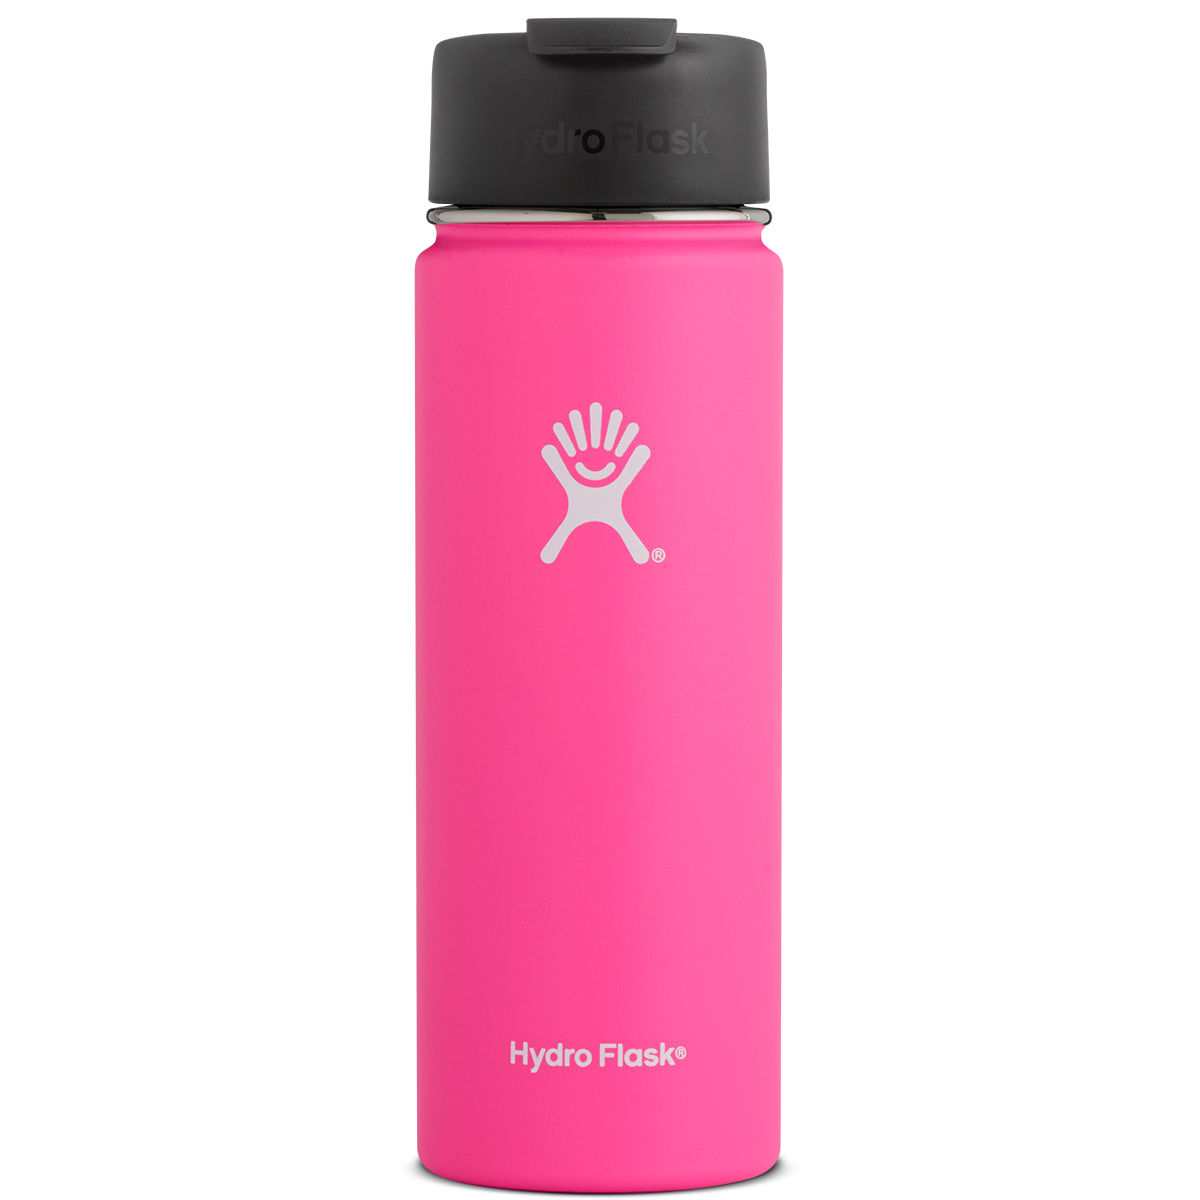 Hydro Flask 20 Oz. Coffee Flask With Flip Lid